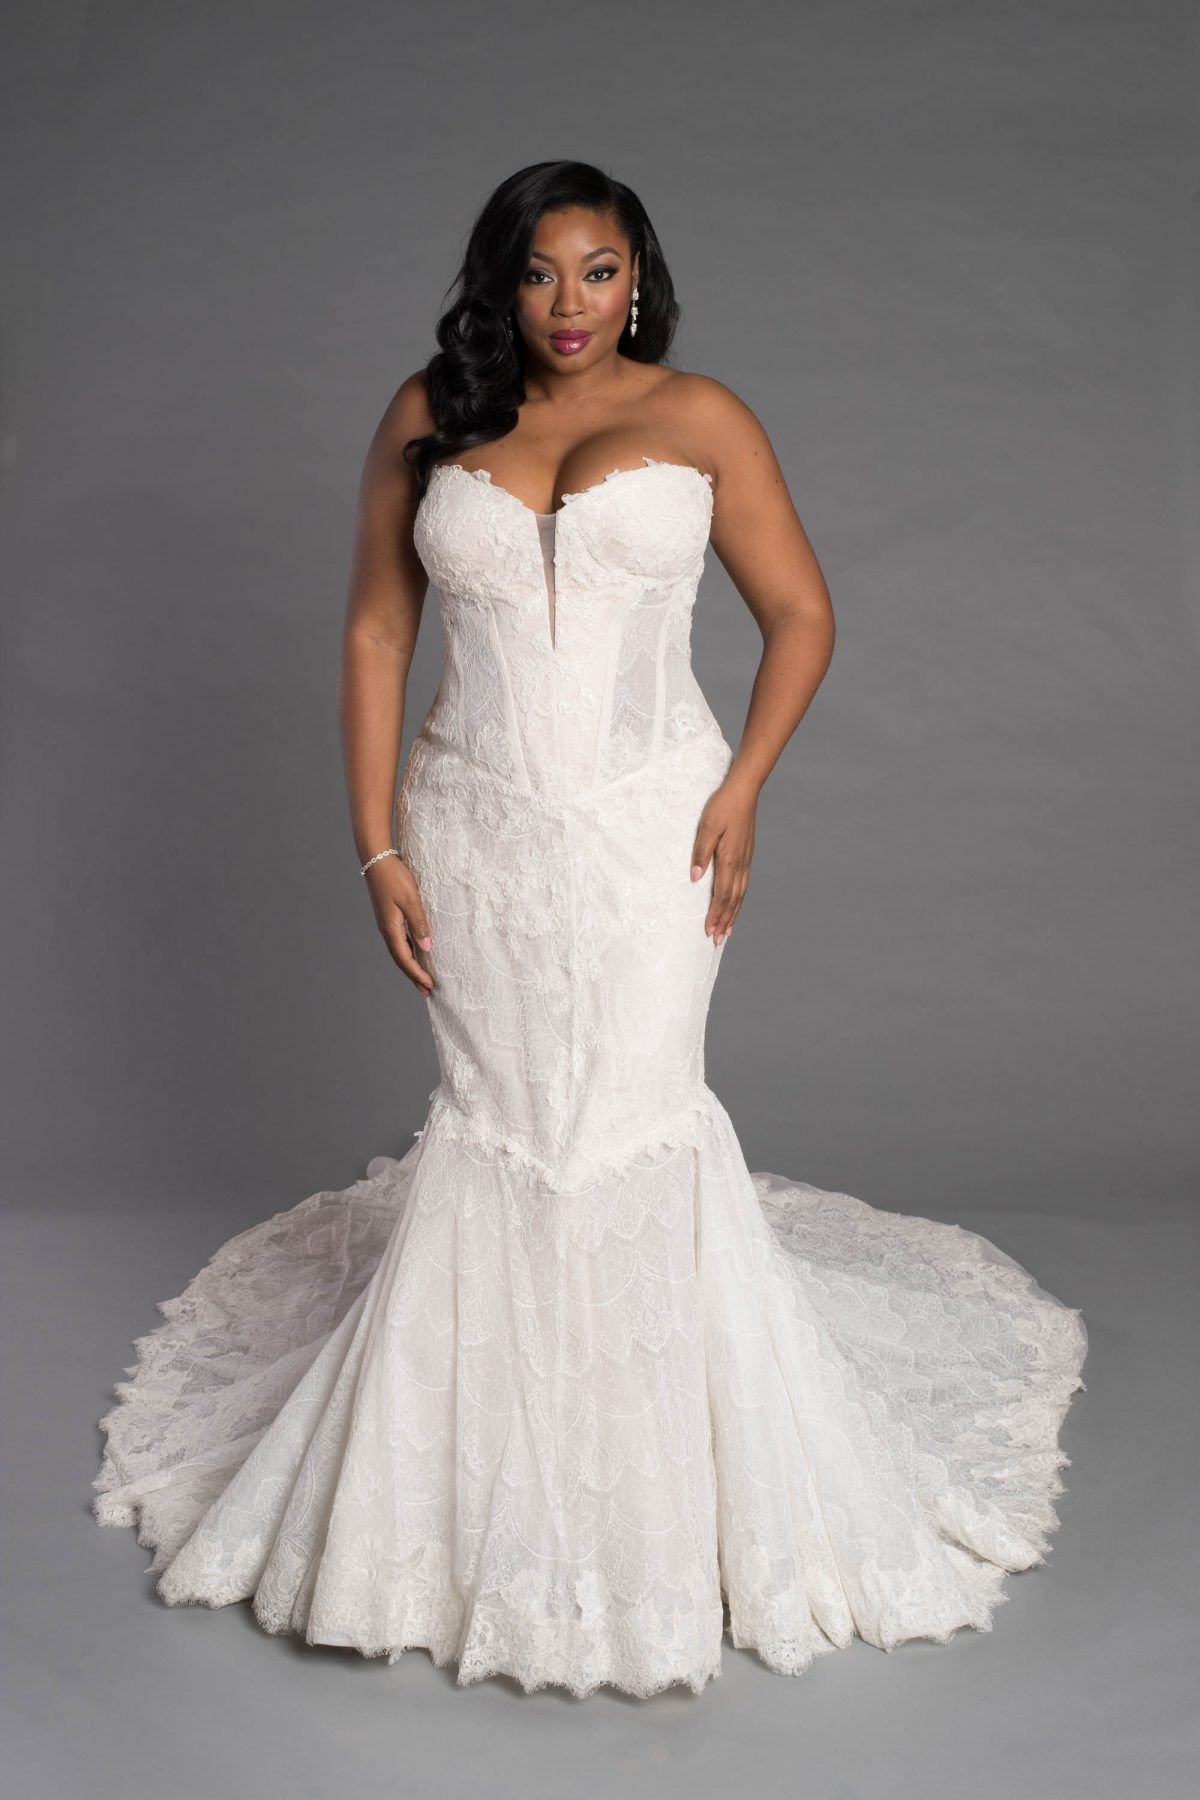 Wedding dresses kleinfeld  Corseted lace sheath with dropped waist and train  Pnina Tornai